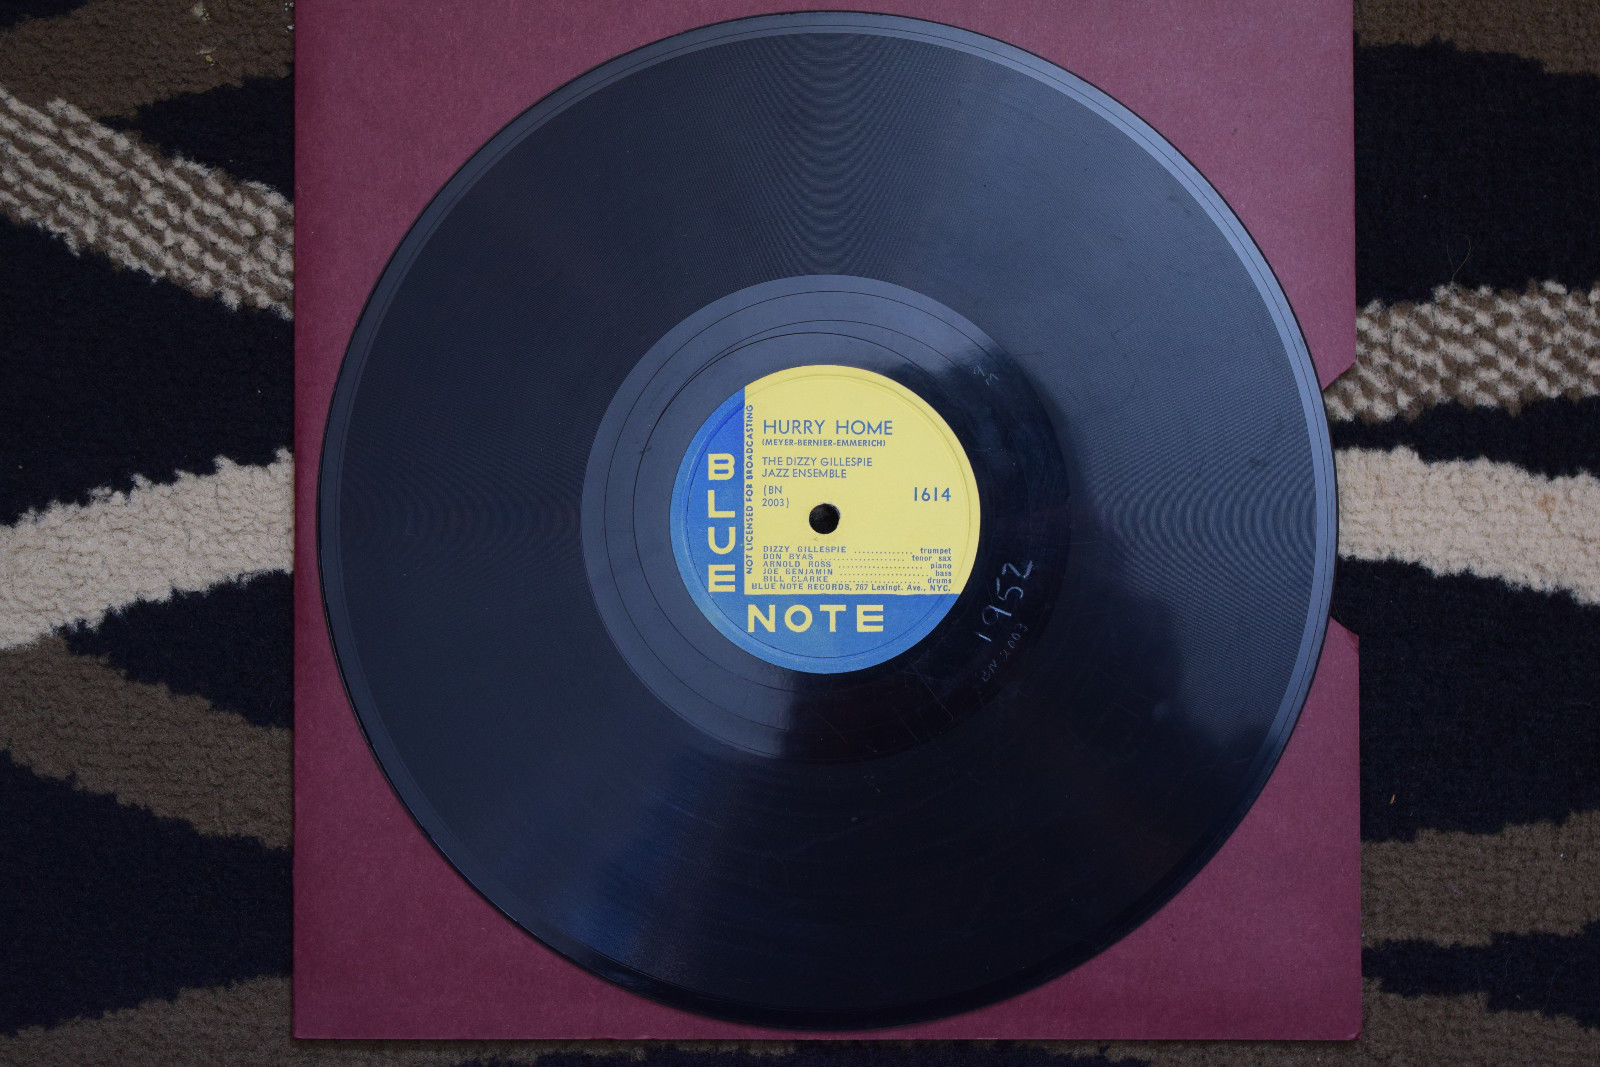 78rpm Jazz; Dizzy Gillespie Blue Note 1618 Afro Paris / Hurry Home